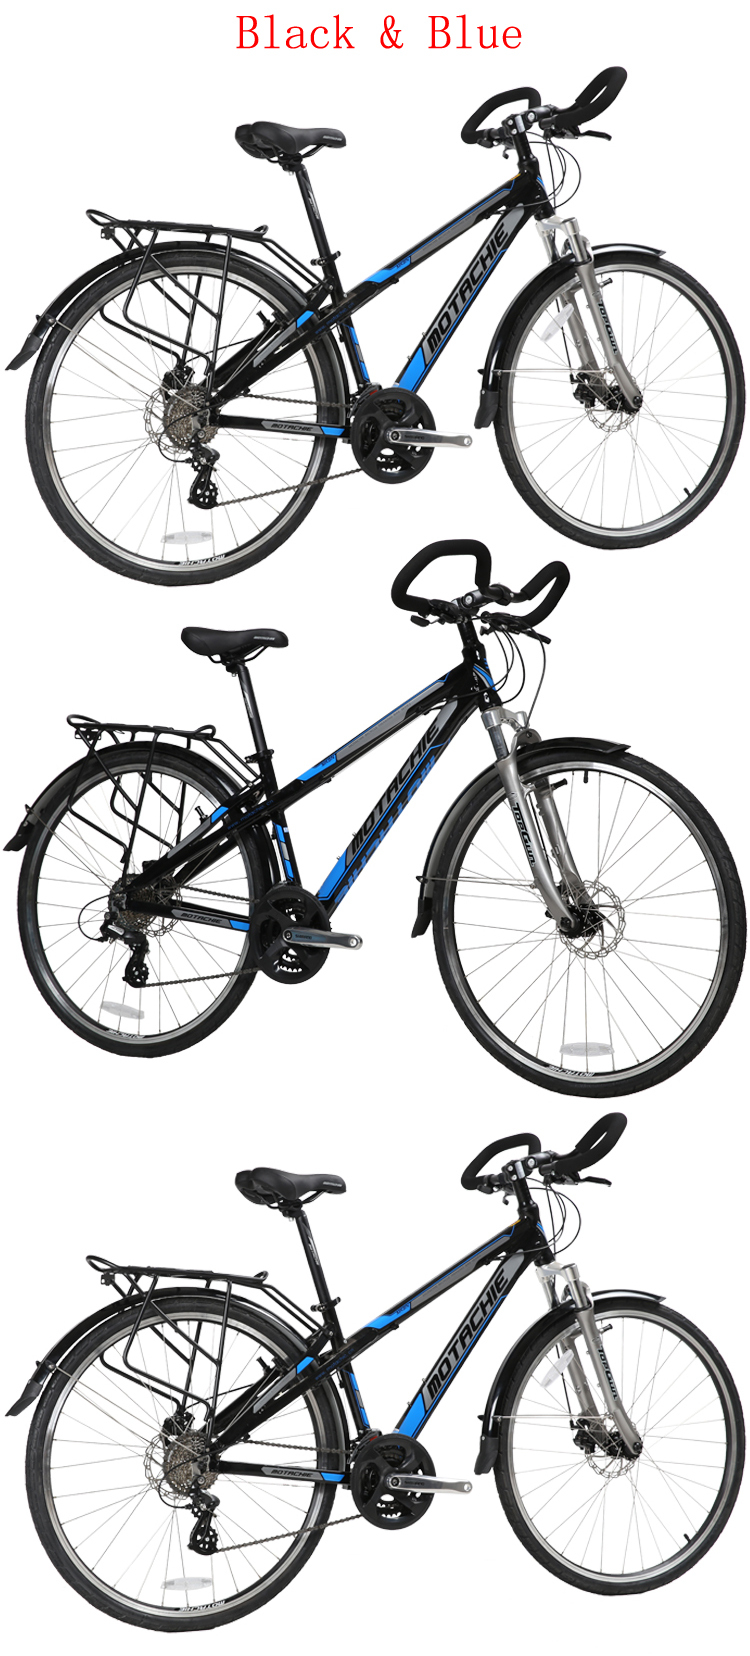 700C lightweight made in China hybrid travel bicycle bikes